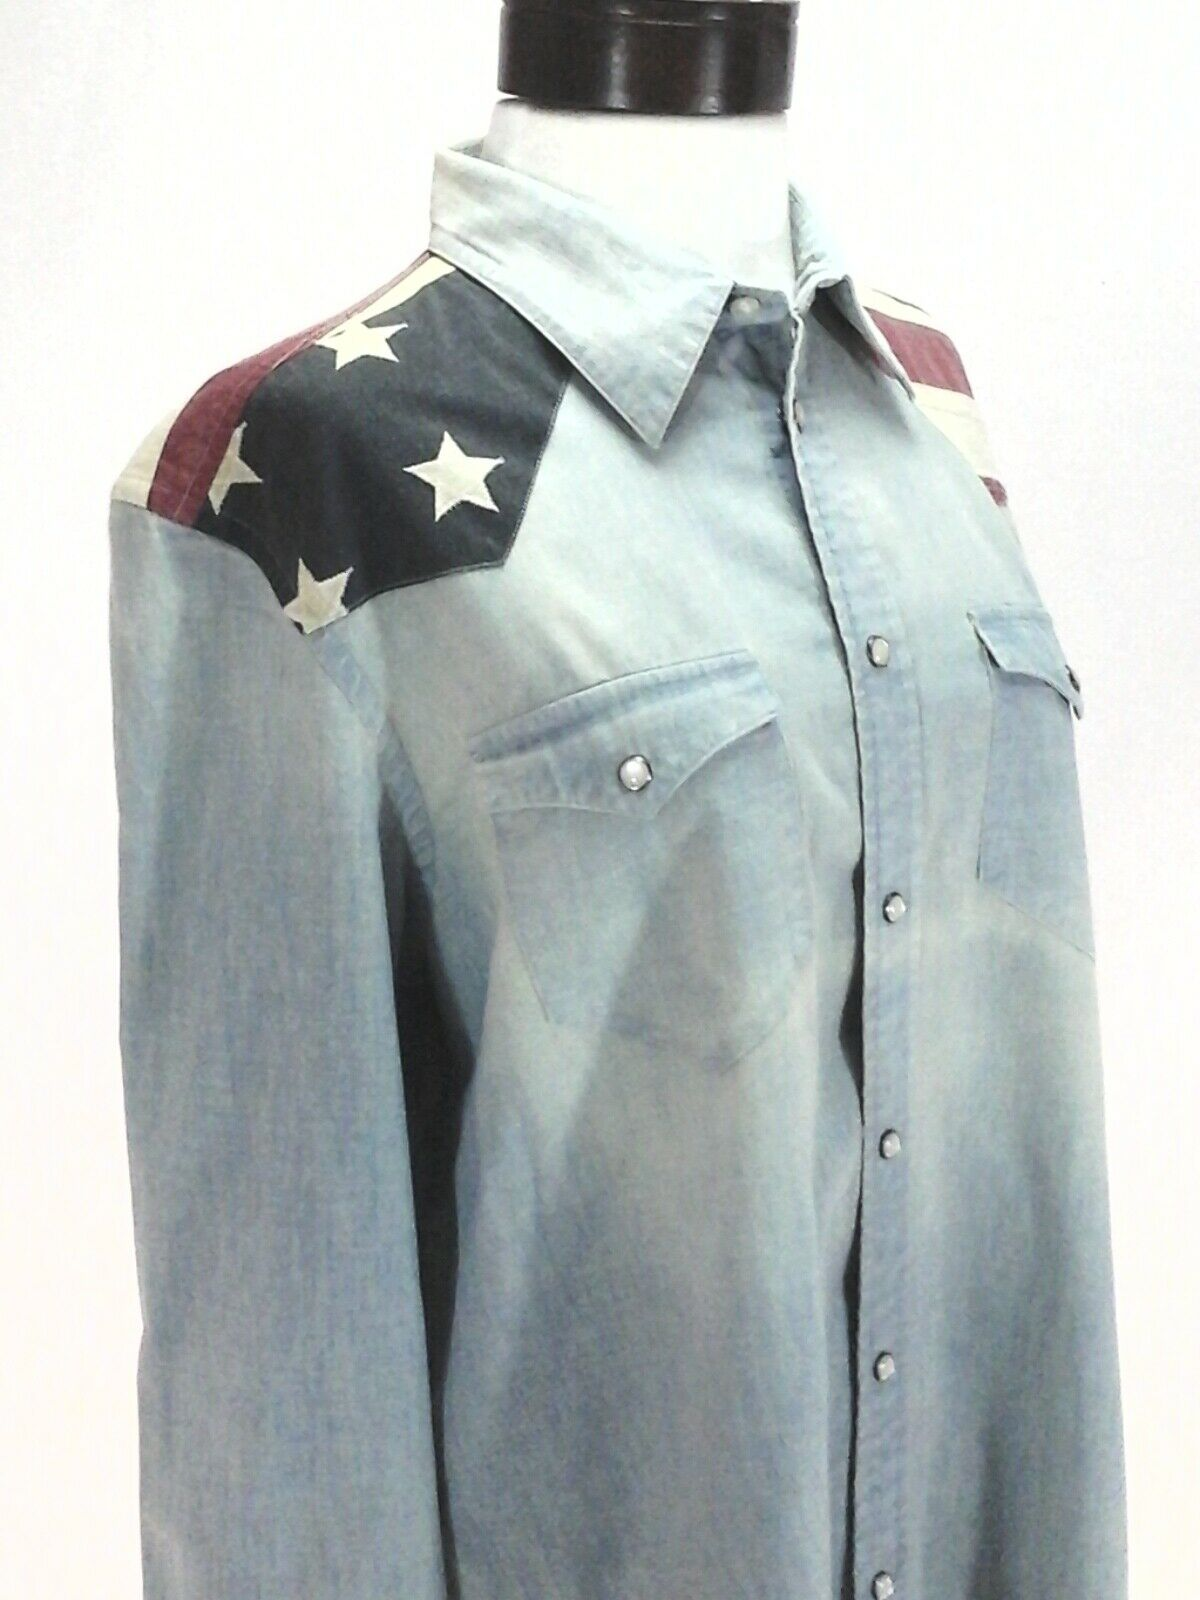 Polo RALPH LAUREN Western Blau Denim Shirt USA Flag Pearlized Snaps damen New